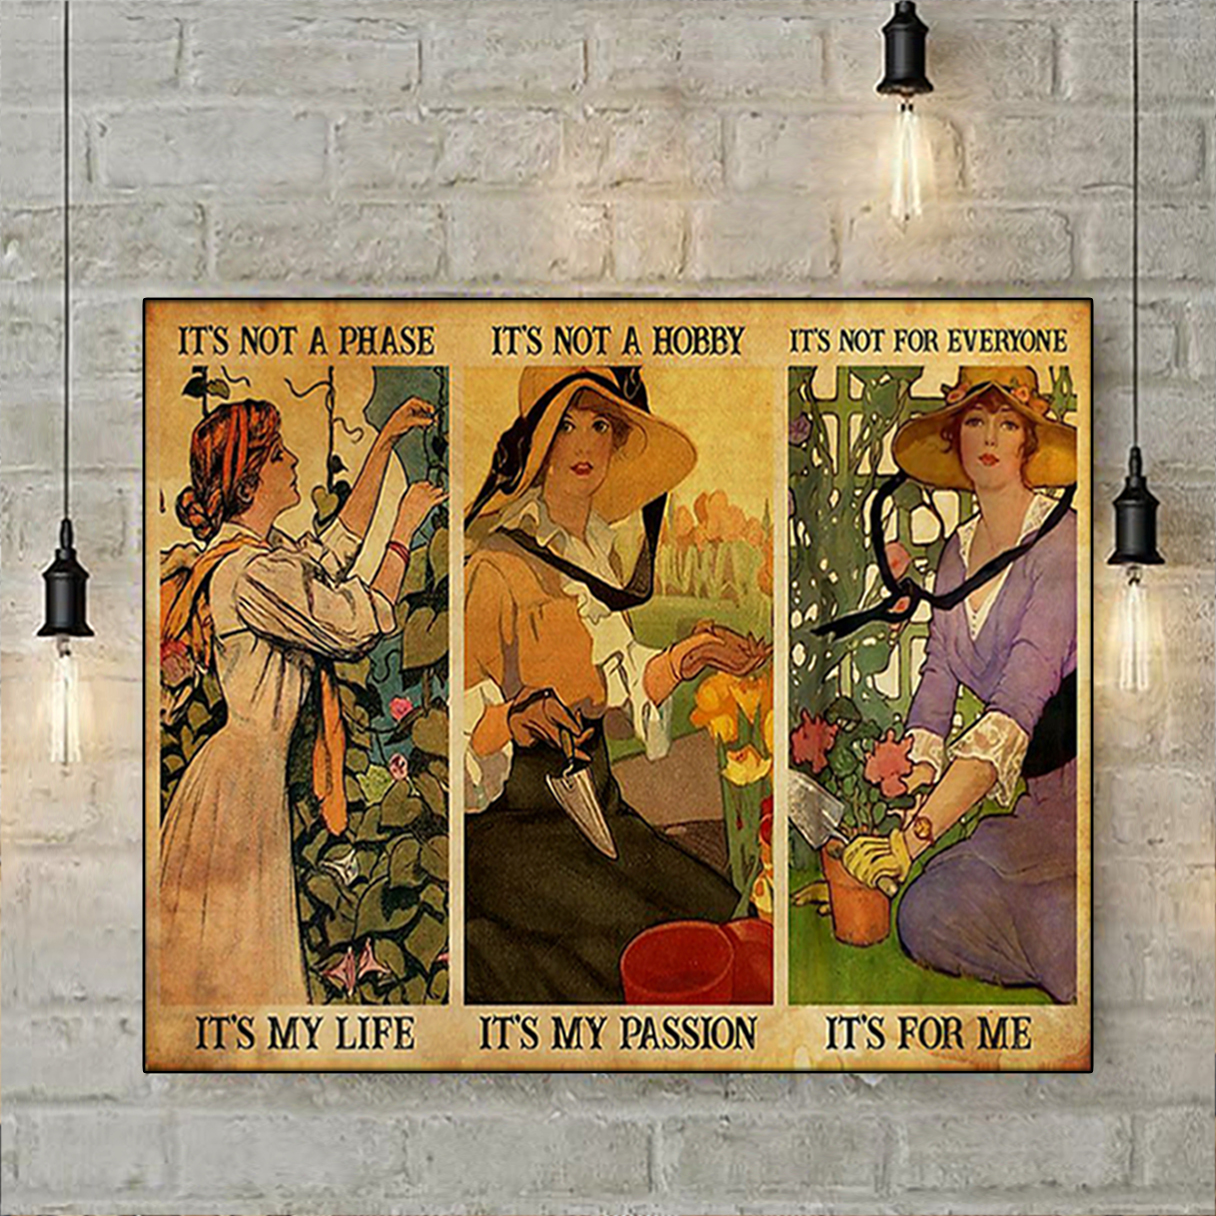 Gardening girl it's not a phase it's my life poster A1